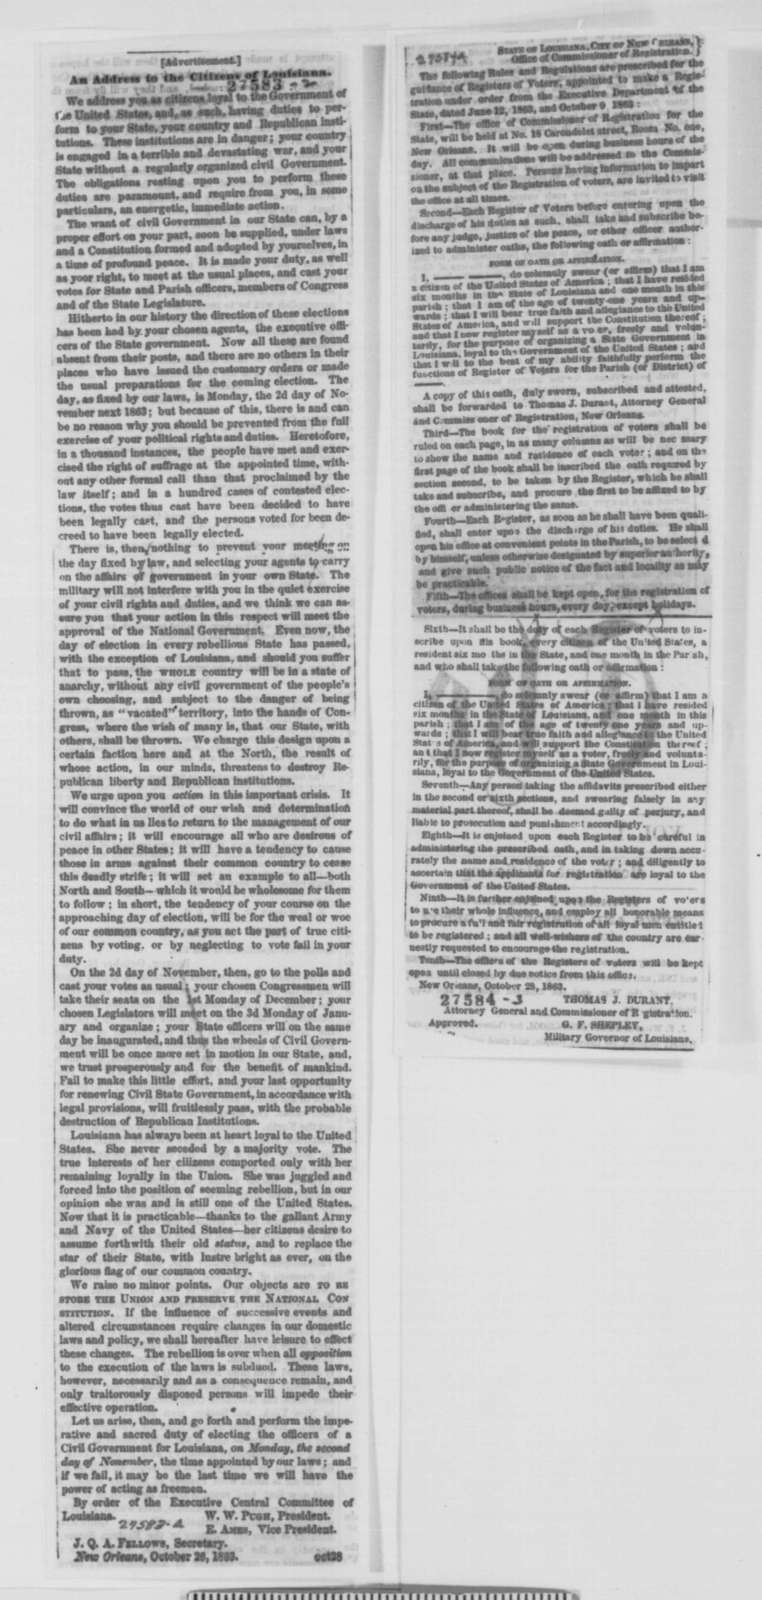 George F. Shepley to Edwin M. Stanton, Thursday, October 29, 1863  (Affairs in Louisiana)